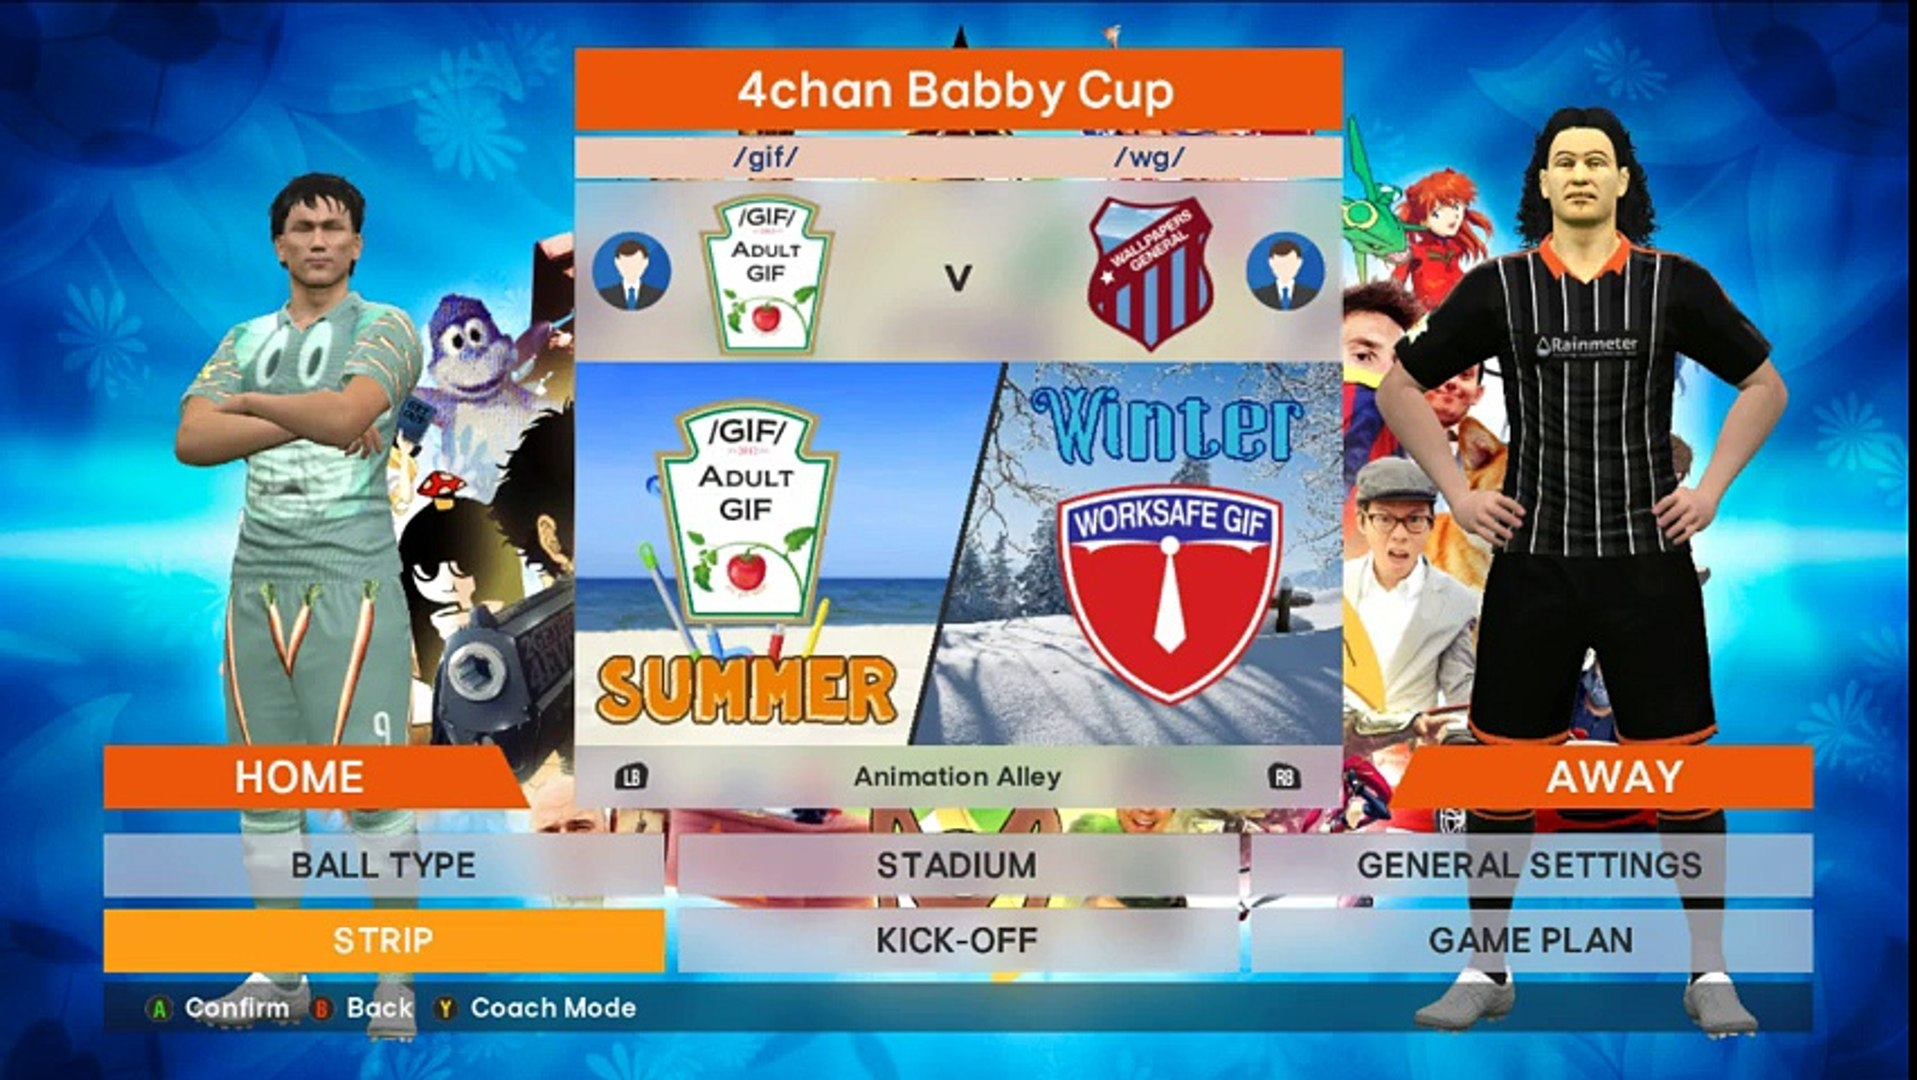 2016 4chan Spring Babby Cup Group E Gif Vs Wg Video Dailymotion